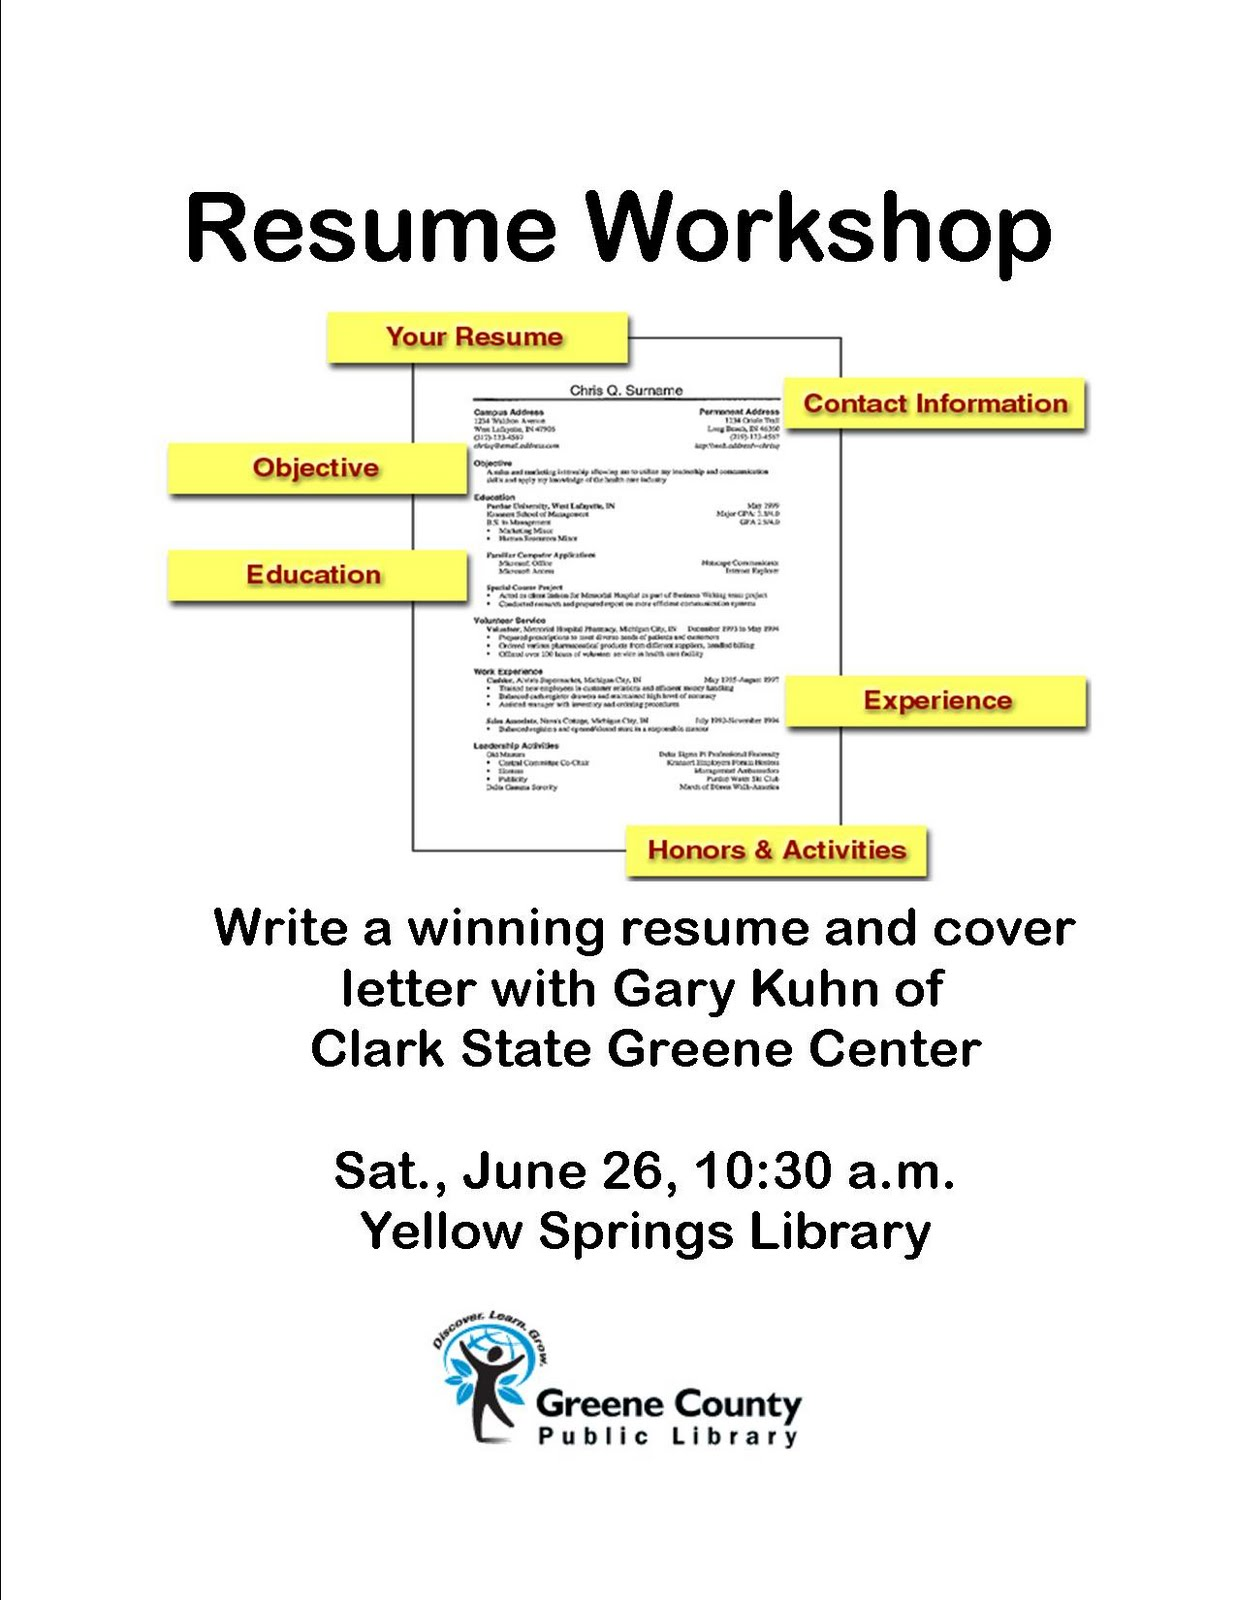 a yellow springs resume workshop at library